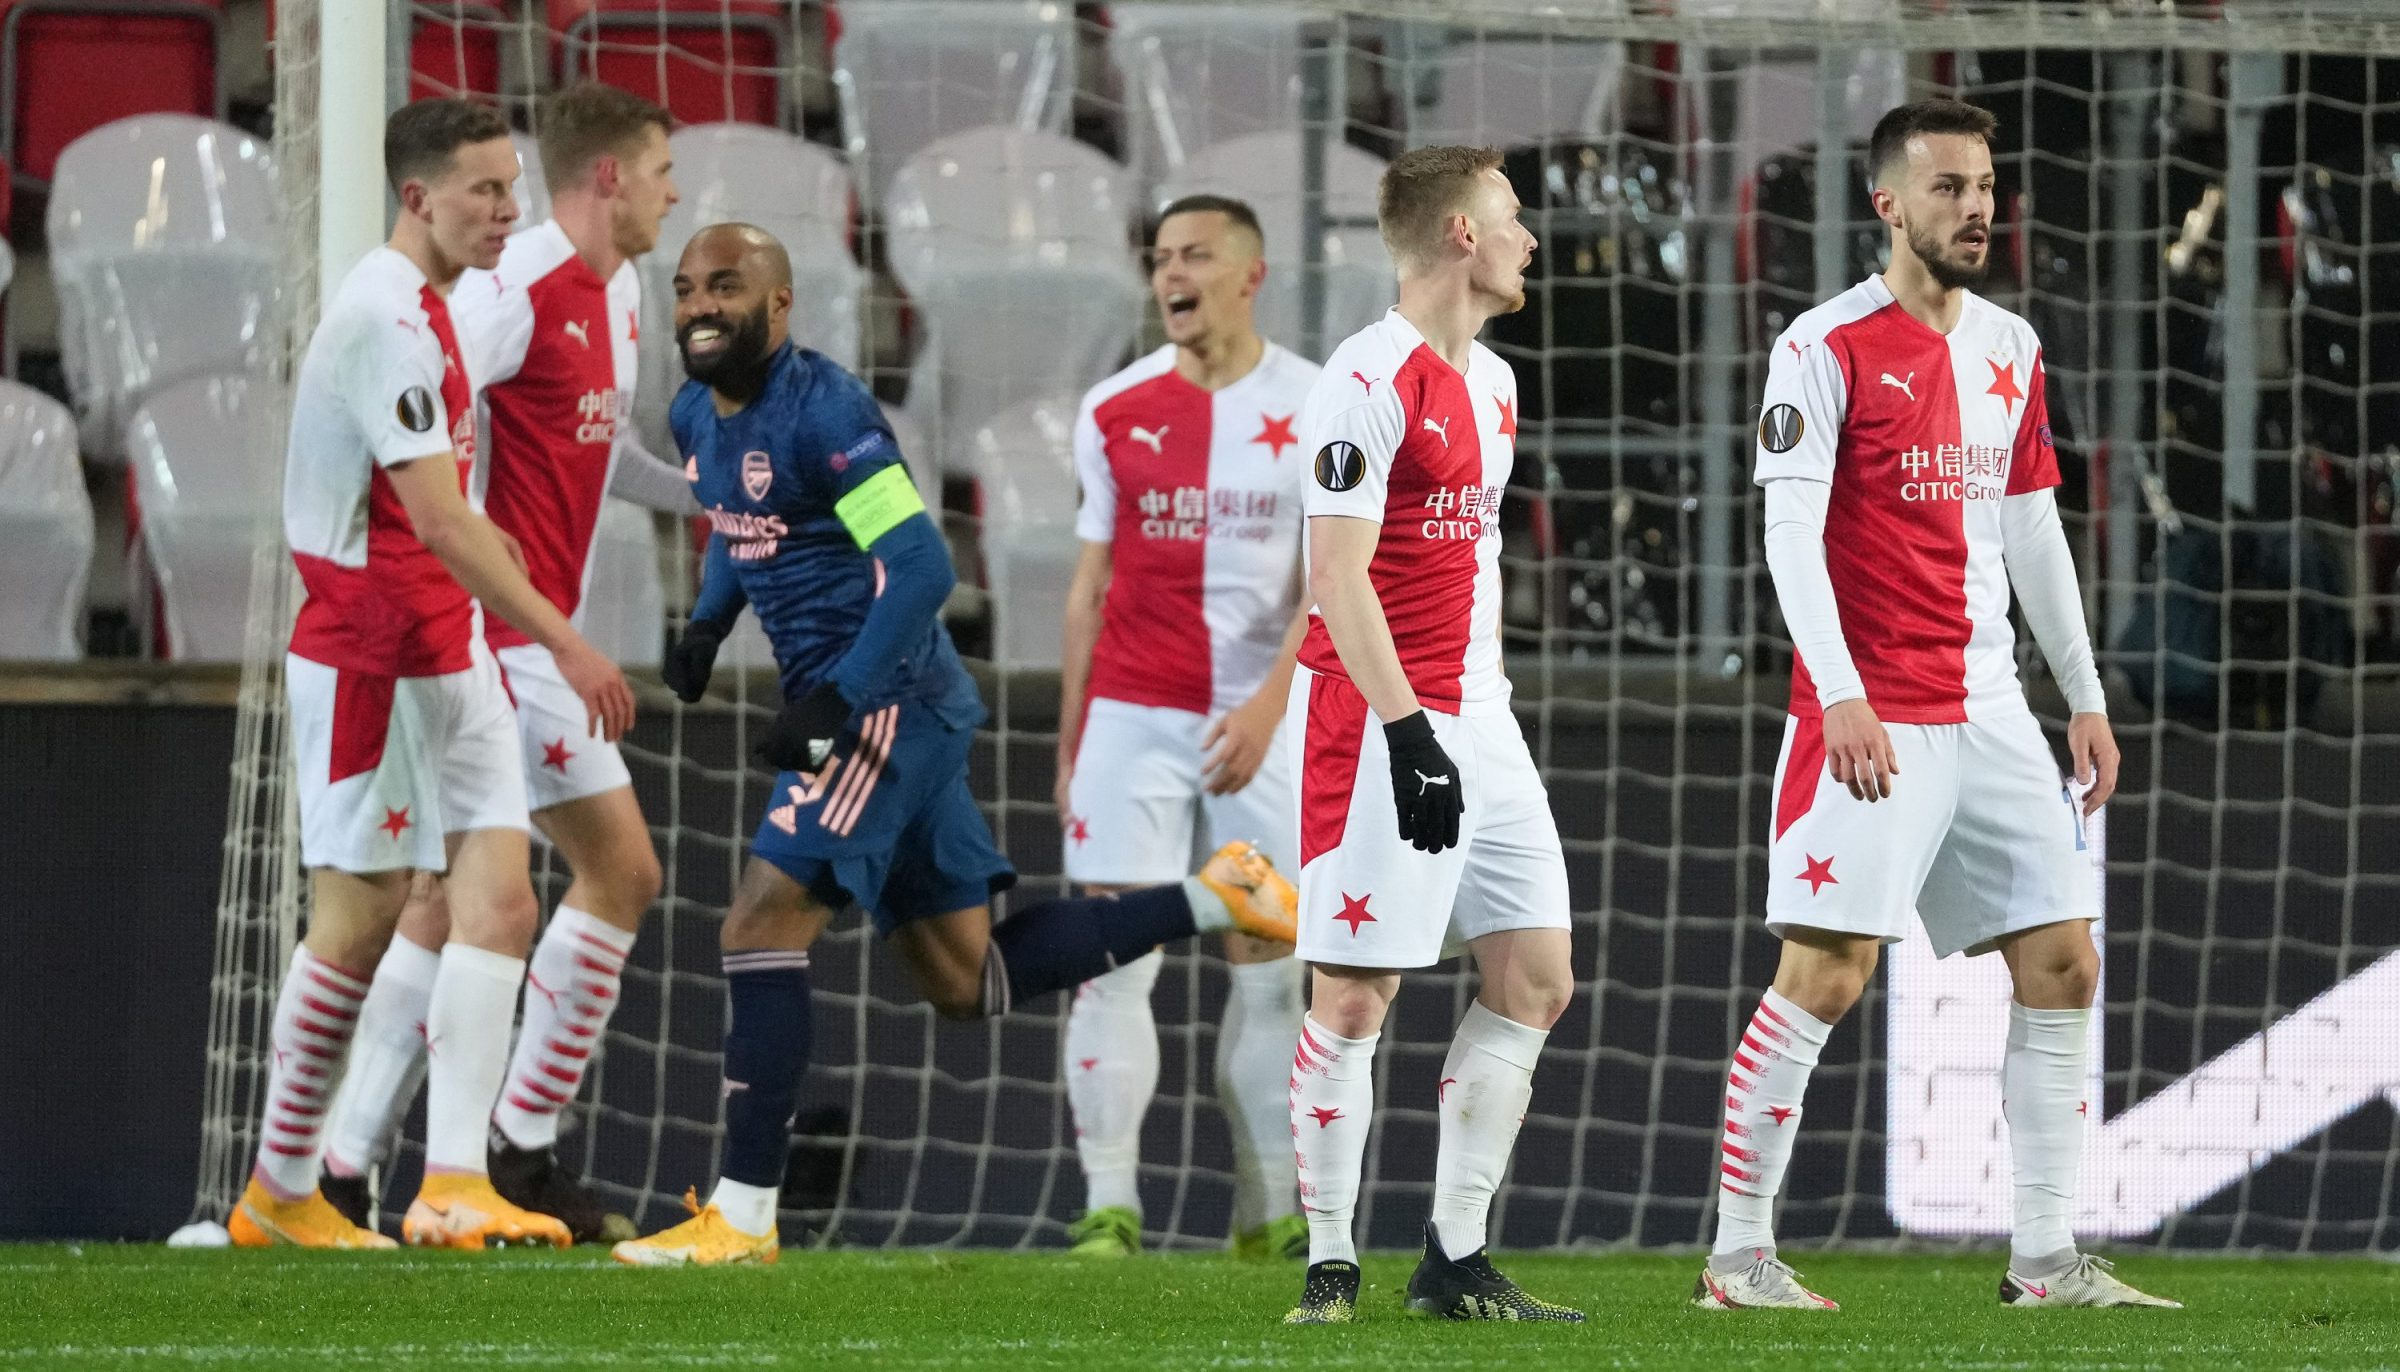 Players of Slavia Praha look dejected after Alexandre Lacazette of Arsenal scored his team's second goal from the penalty spot during the UEFA Europa League Quarter Final Second Leg match between Slavia Praha and Arsenal FC at Sinobo Stadium on April 15, 2021 in Prague, Czech Republic